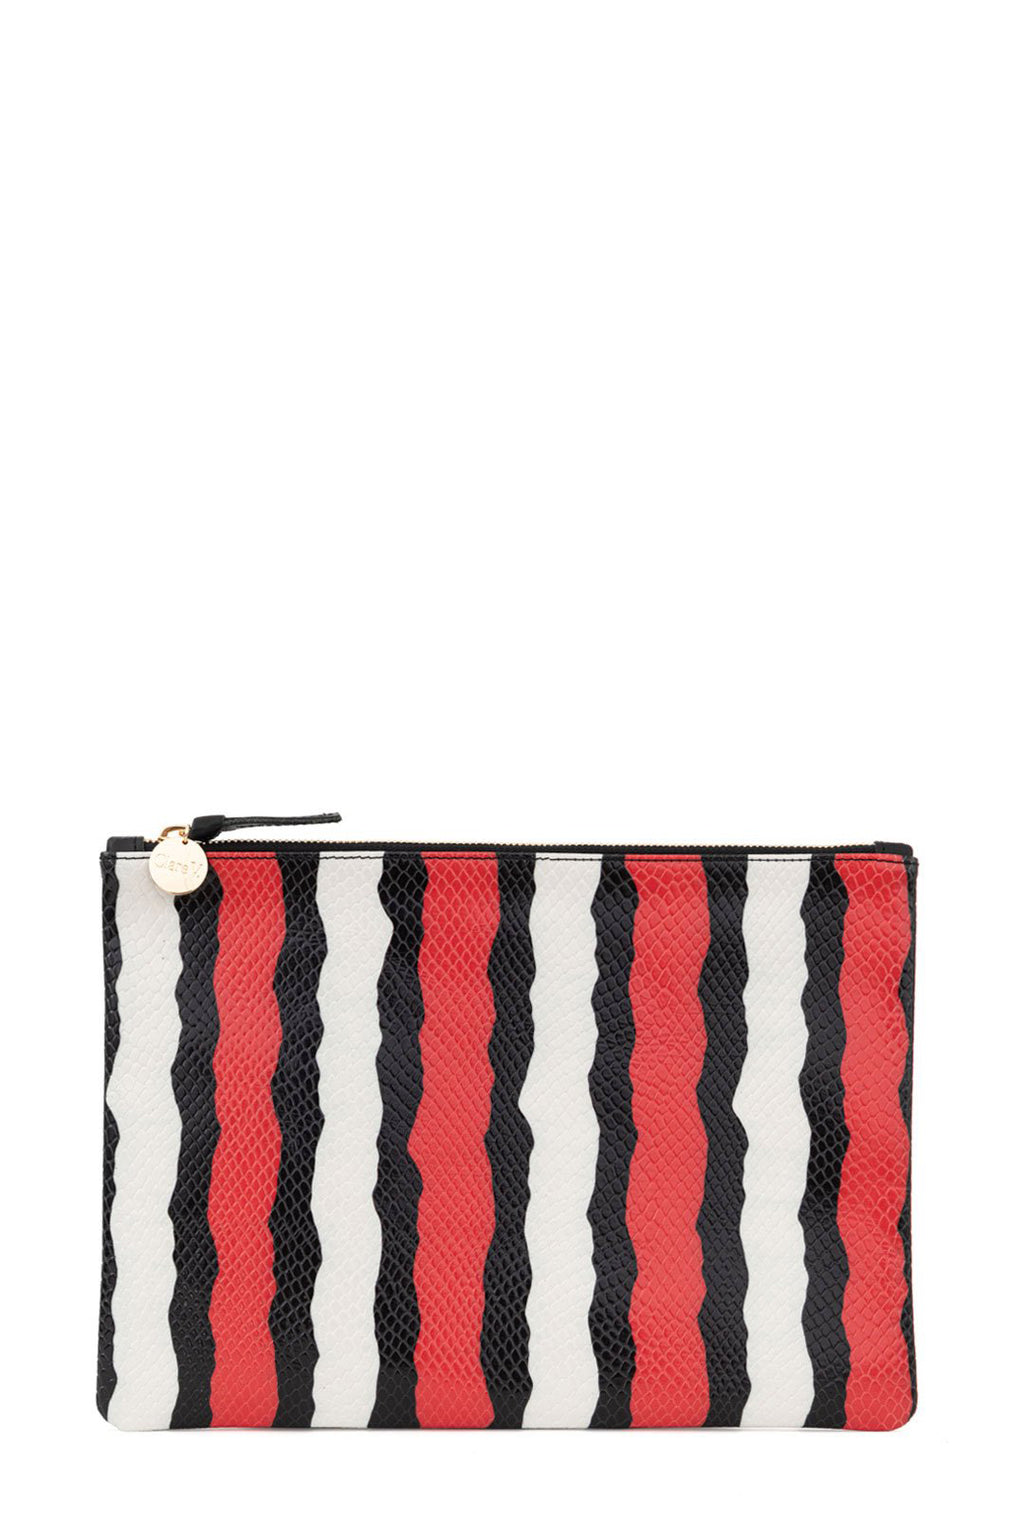 clare v. flat clutch poppy striped snake